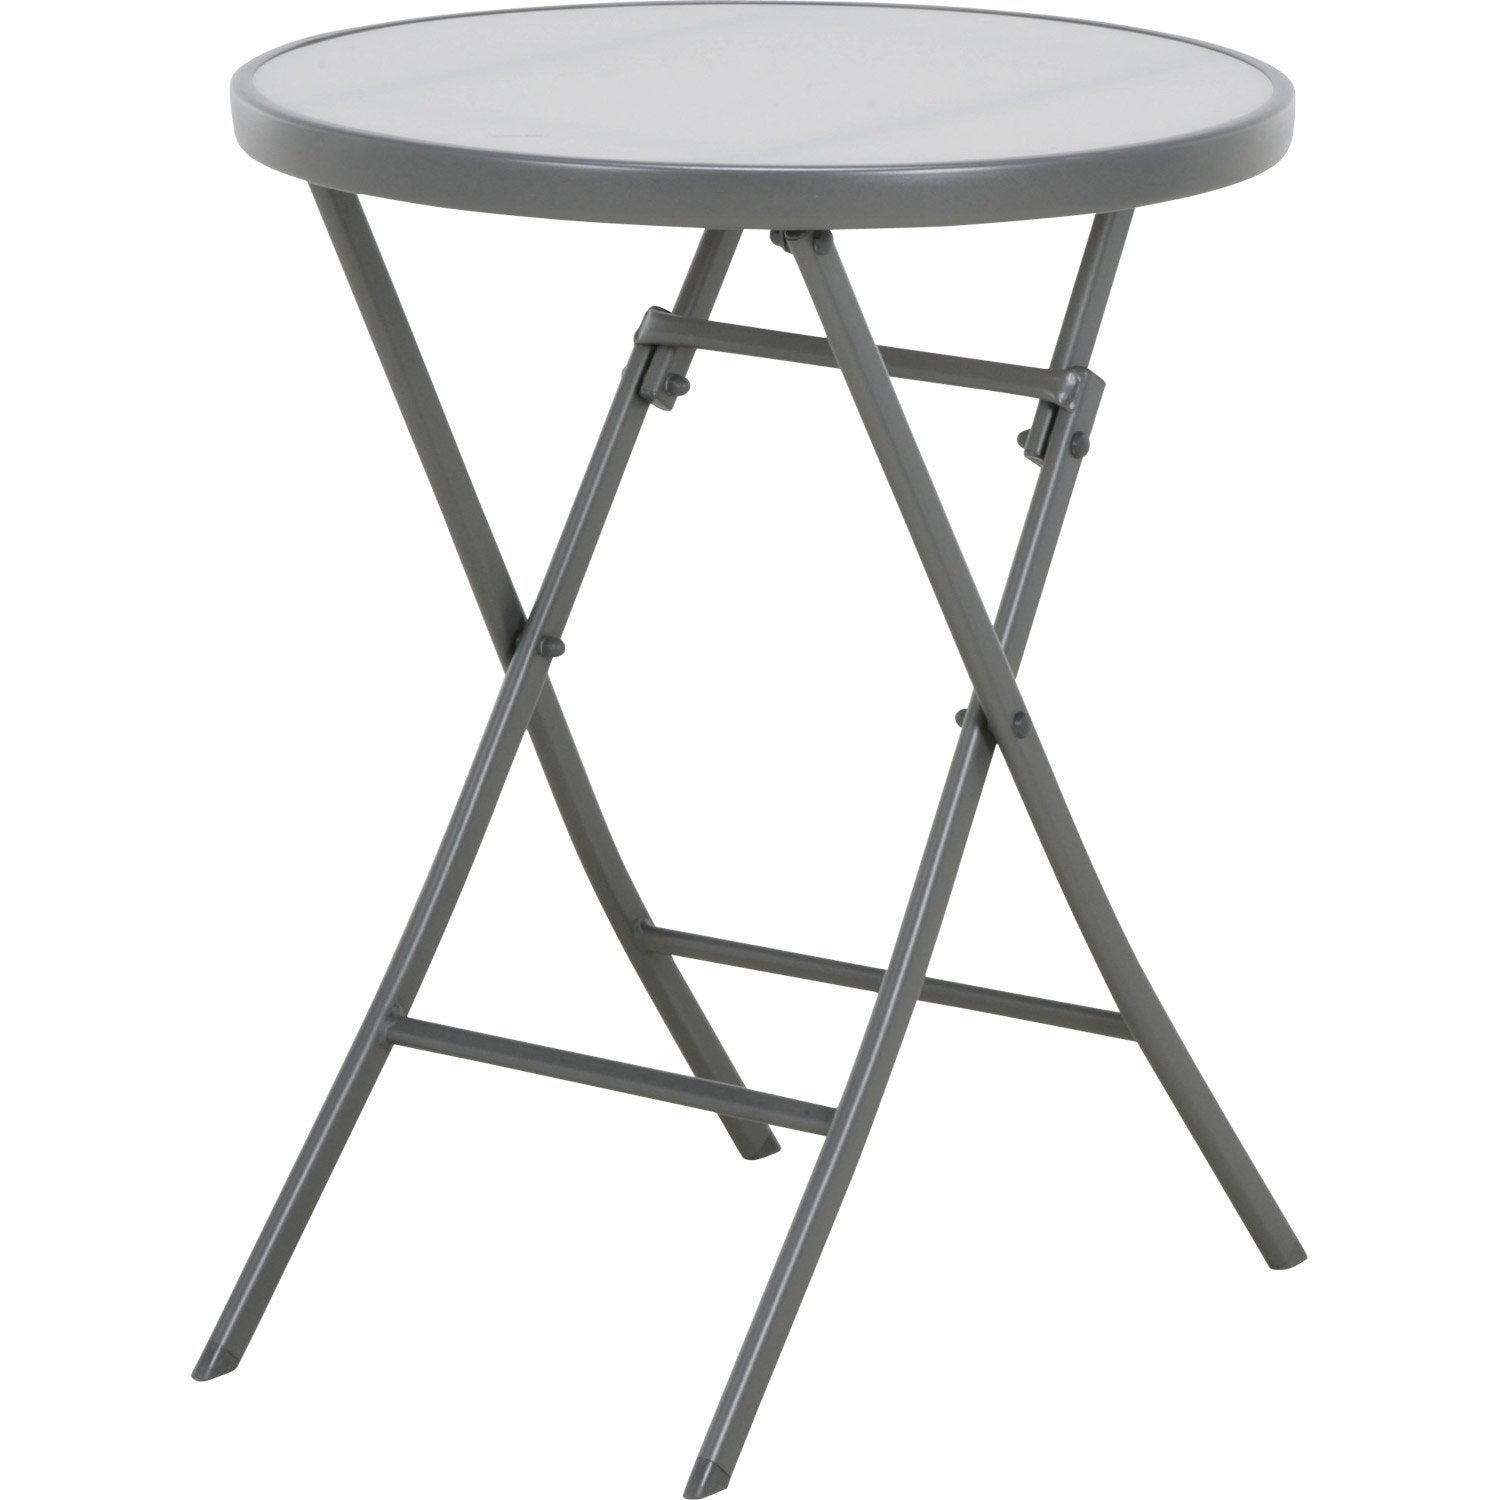 Table de jardin pliante chez carrefour des for Table jardin metal ronde pliante